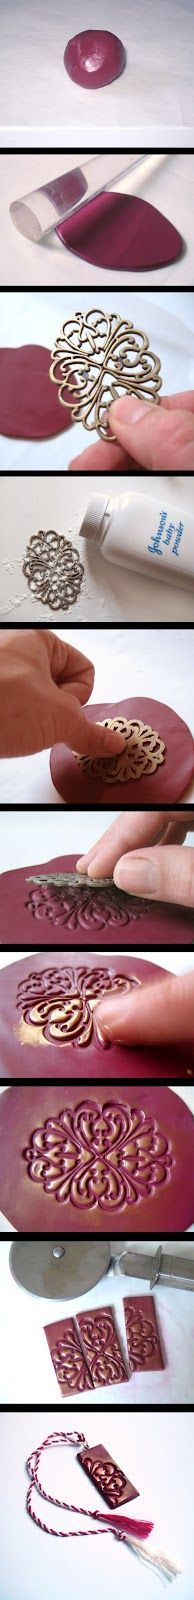 pendant of Polymer clay using brass filigree as a stamp.